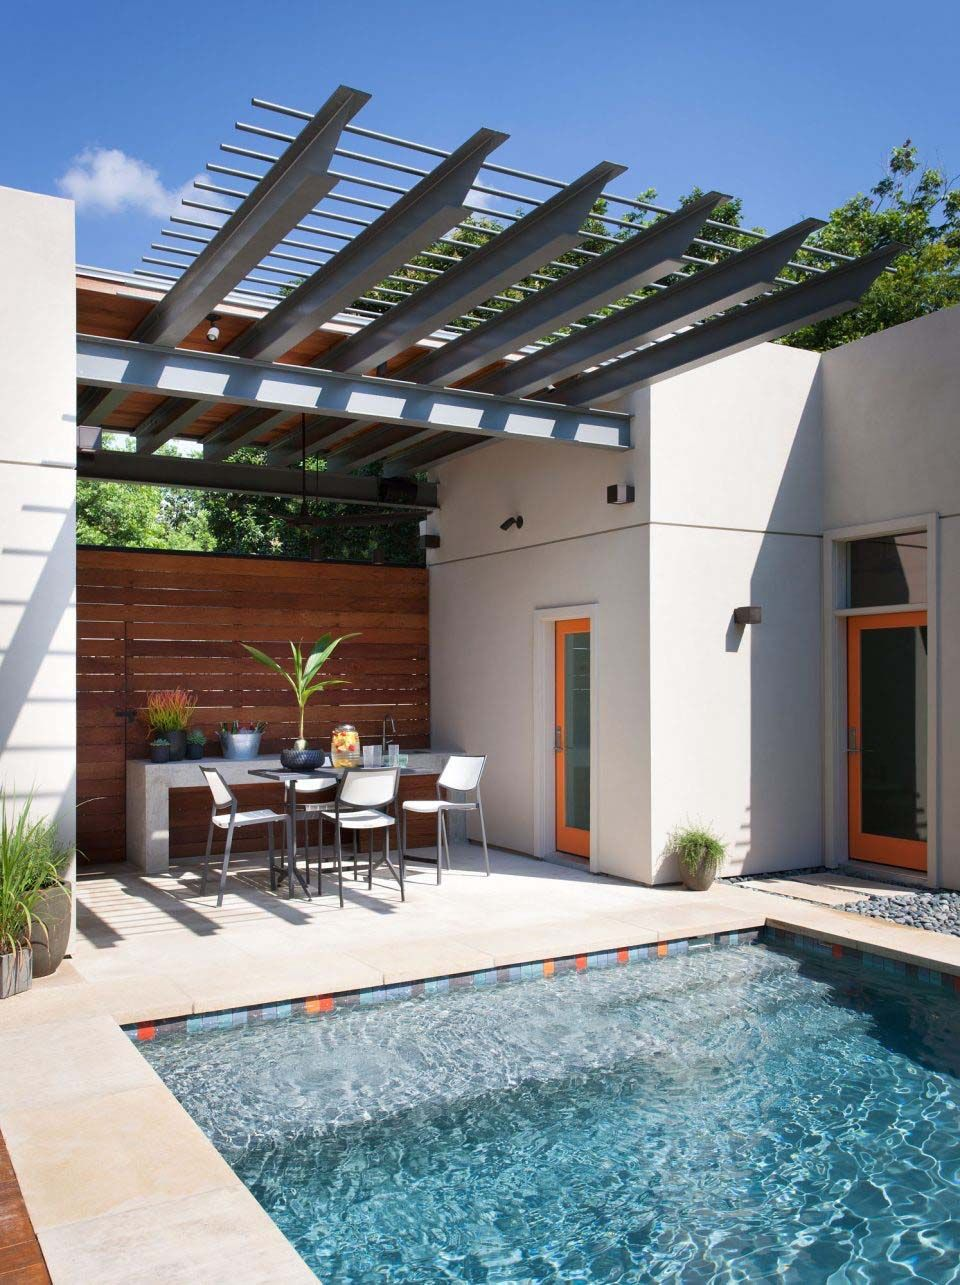 Backyard oasis in Austin with fabulous outdoor living